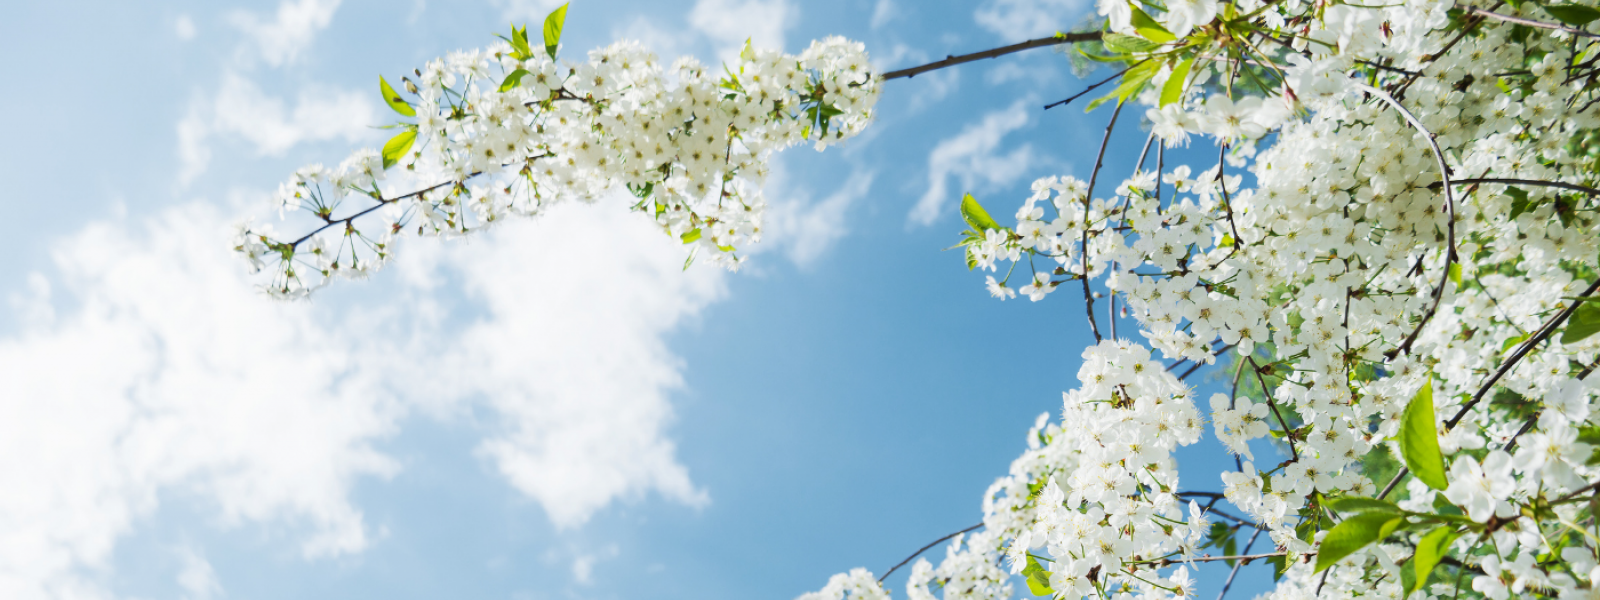 branch of white cherry blossoms against a blue sky